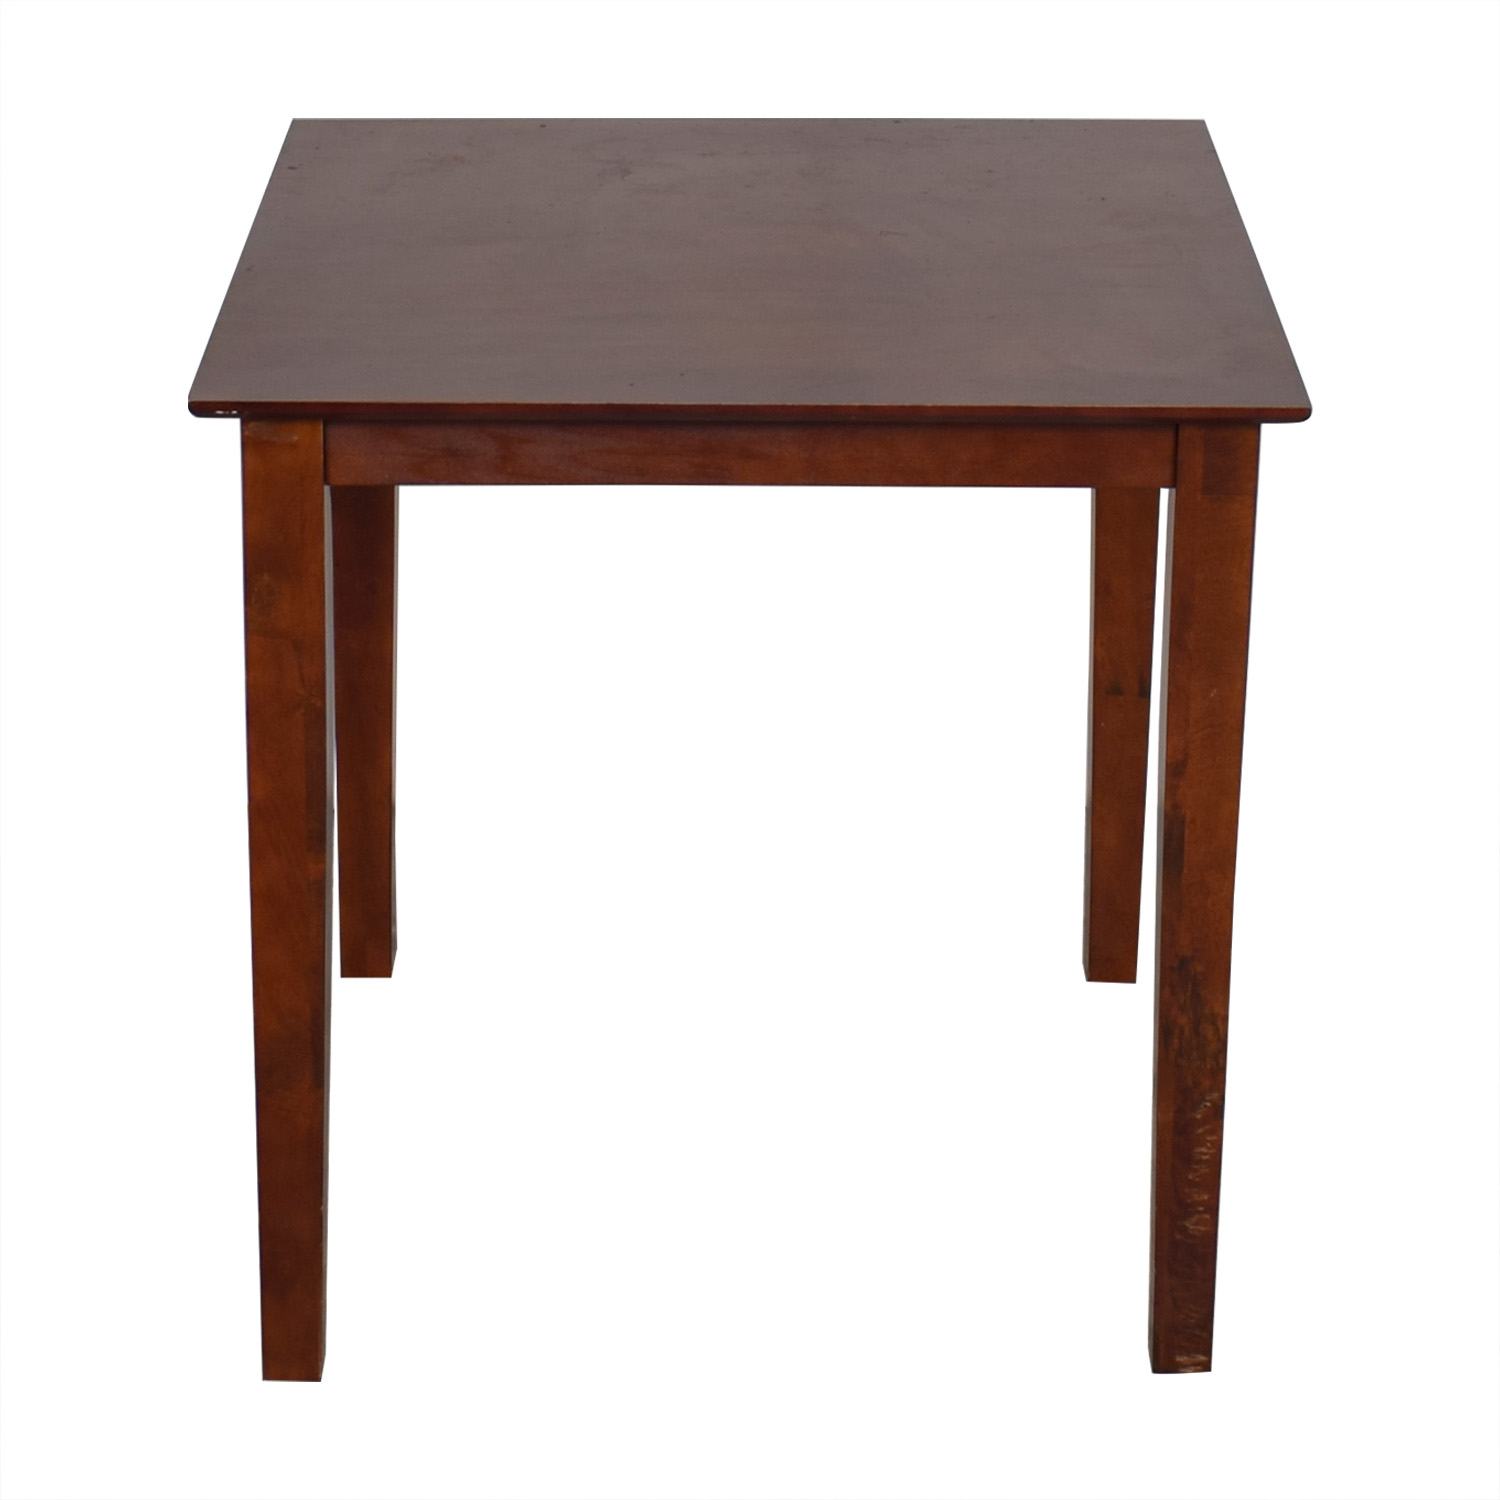 buy Costco Costco Counter-Height Table online